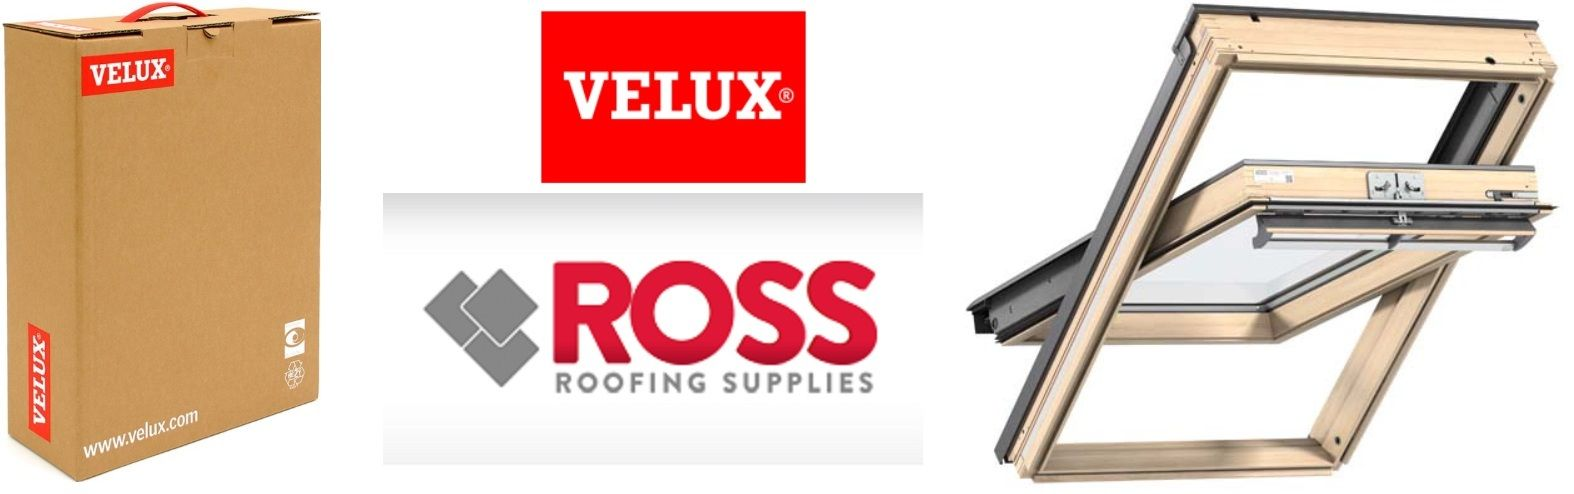 Ross Roofing Velux Shop